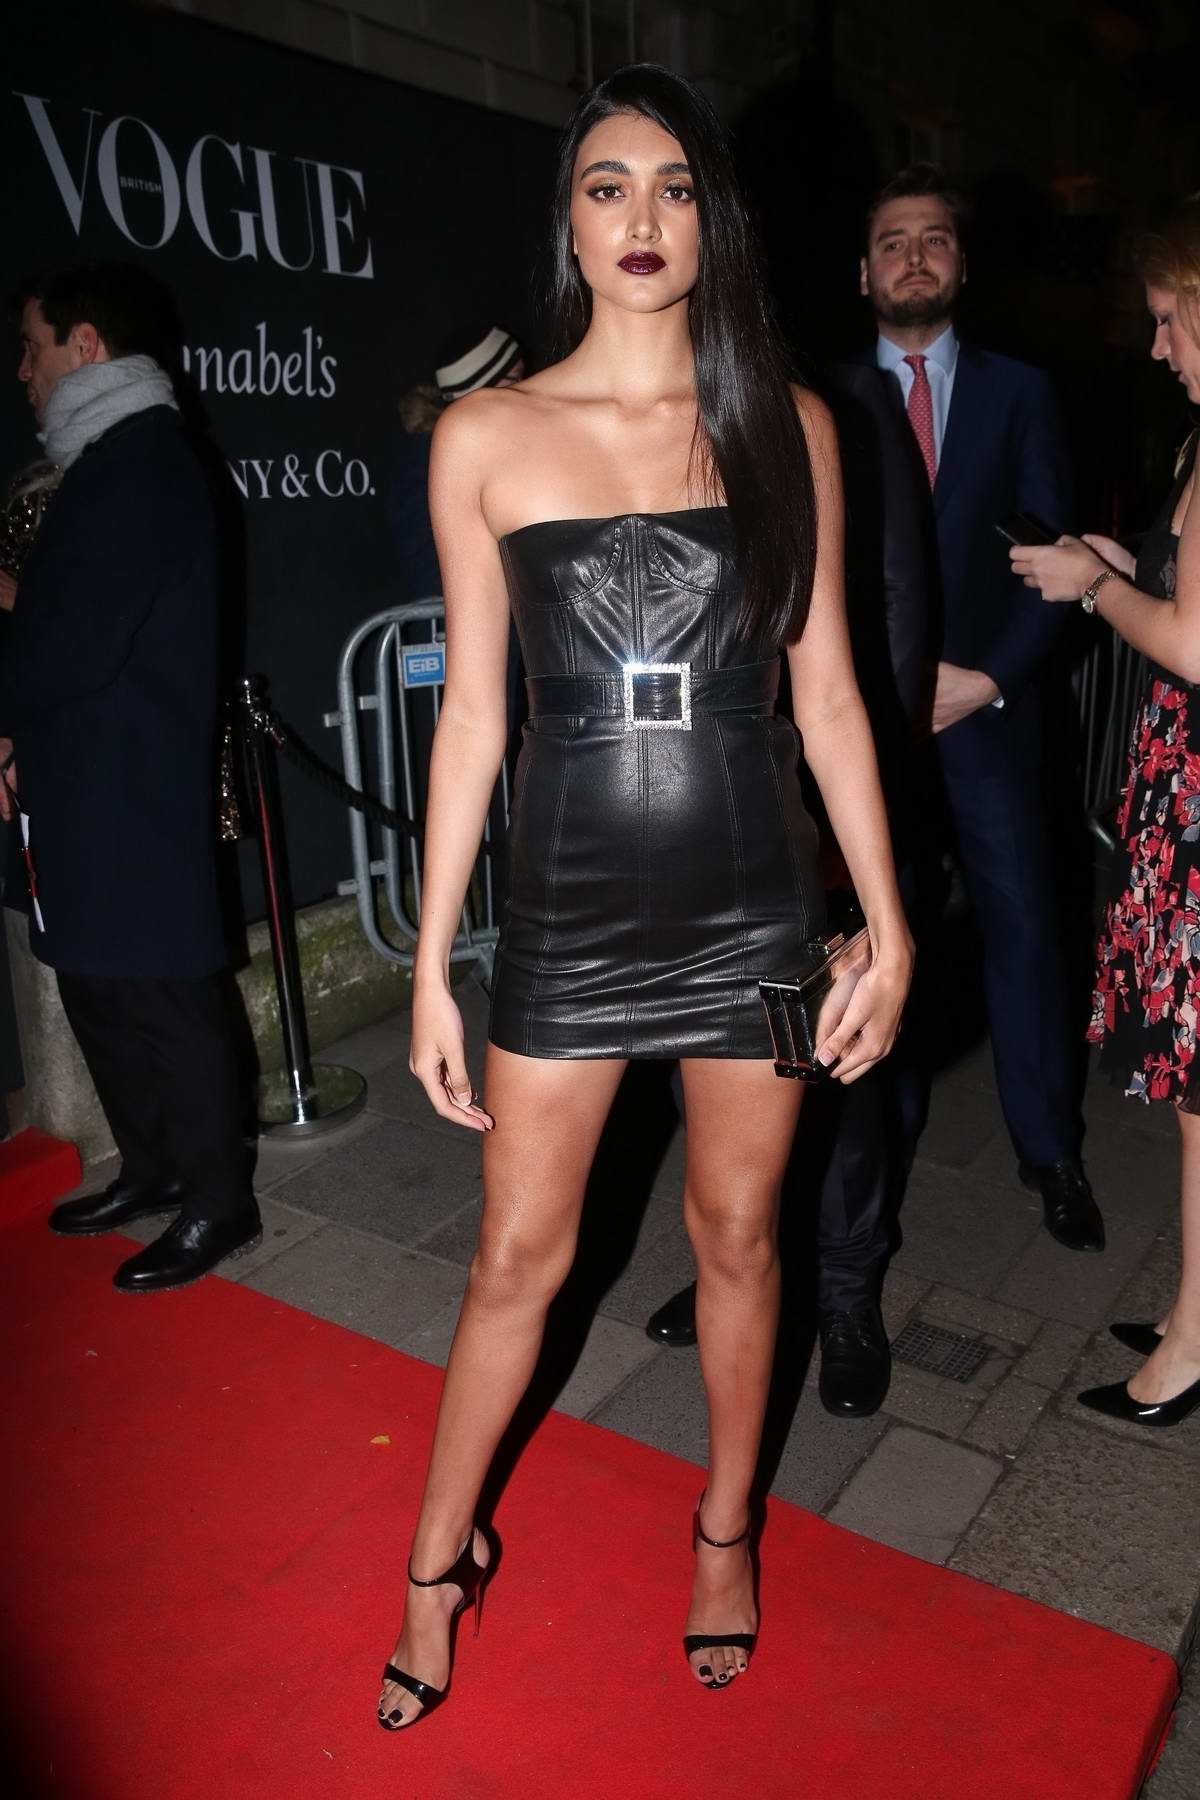 Neelam Gill attend the Vogue x Tiffany & Co BAFTA after-party, held at Annabel's Private Members Club in Mayfair, London